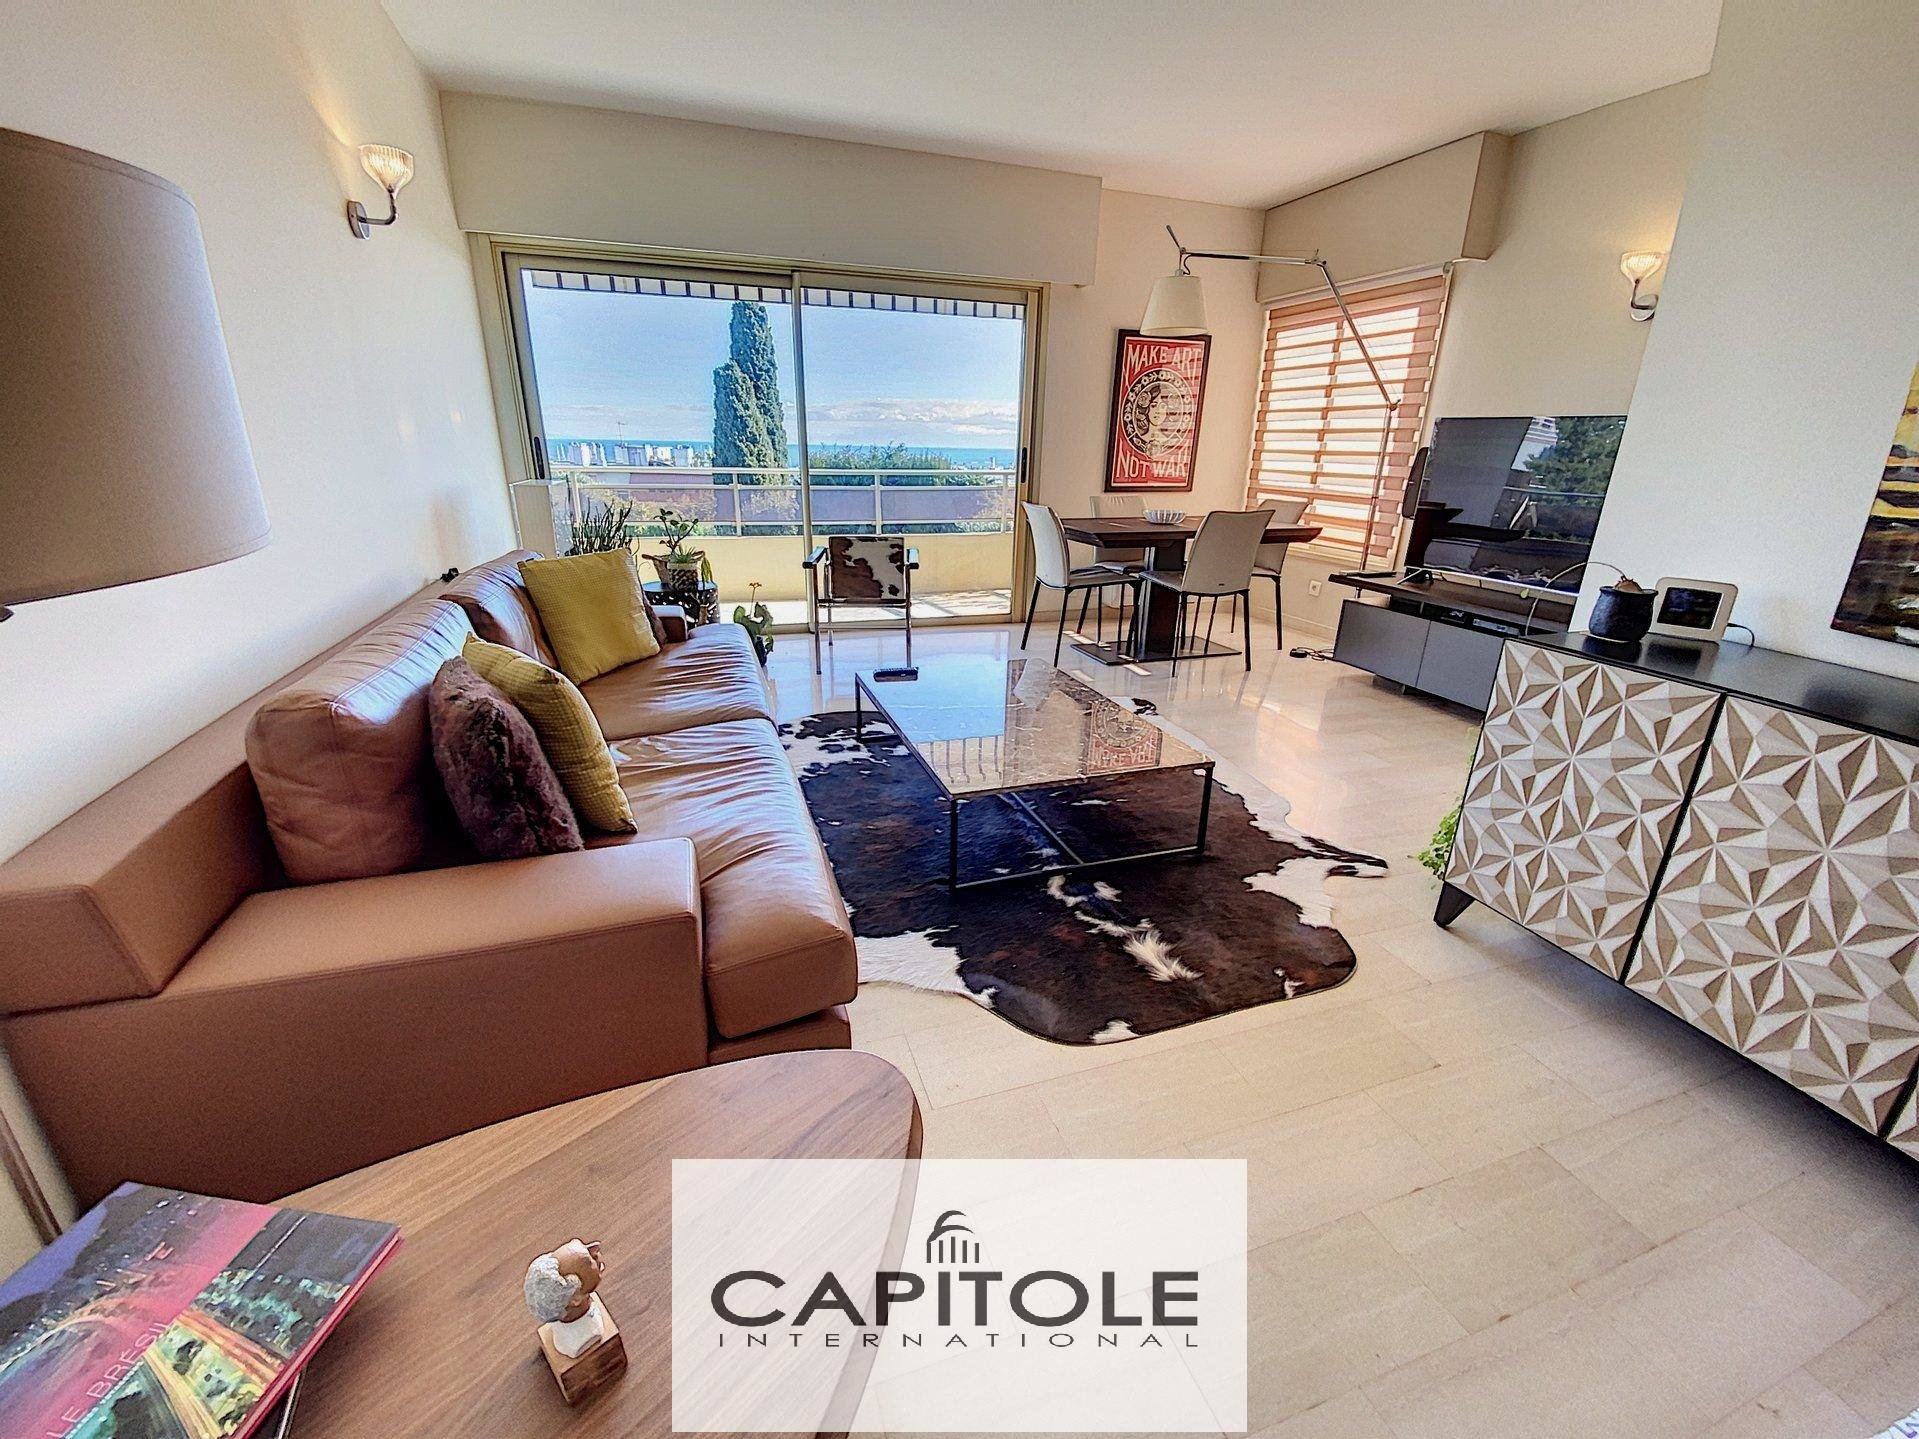 For sale, Antibes, sea view 2 bedroom apartment, terrace, garage, parking space, cellar